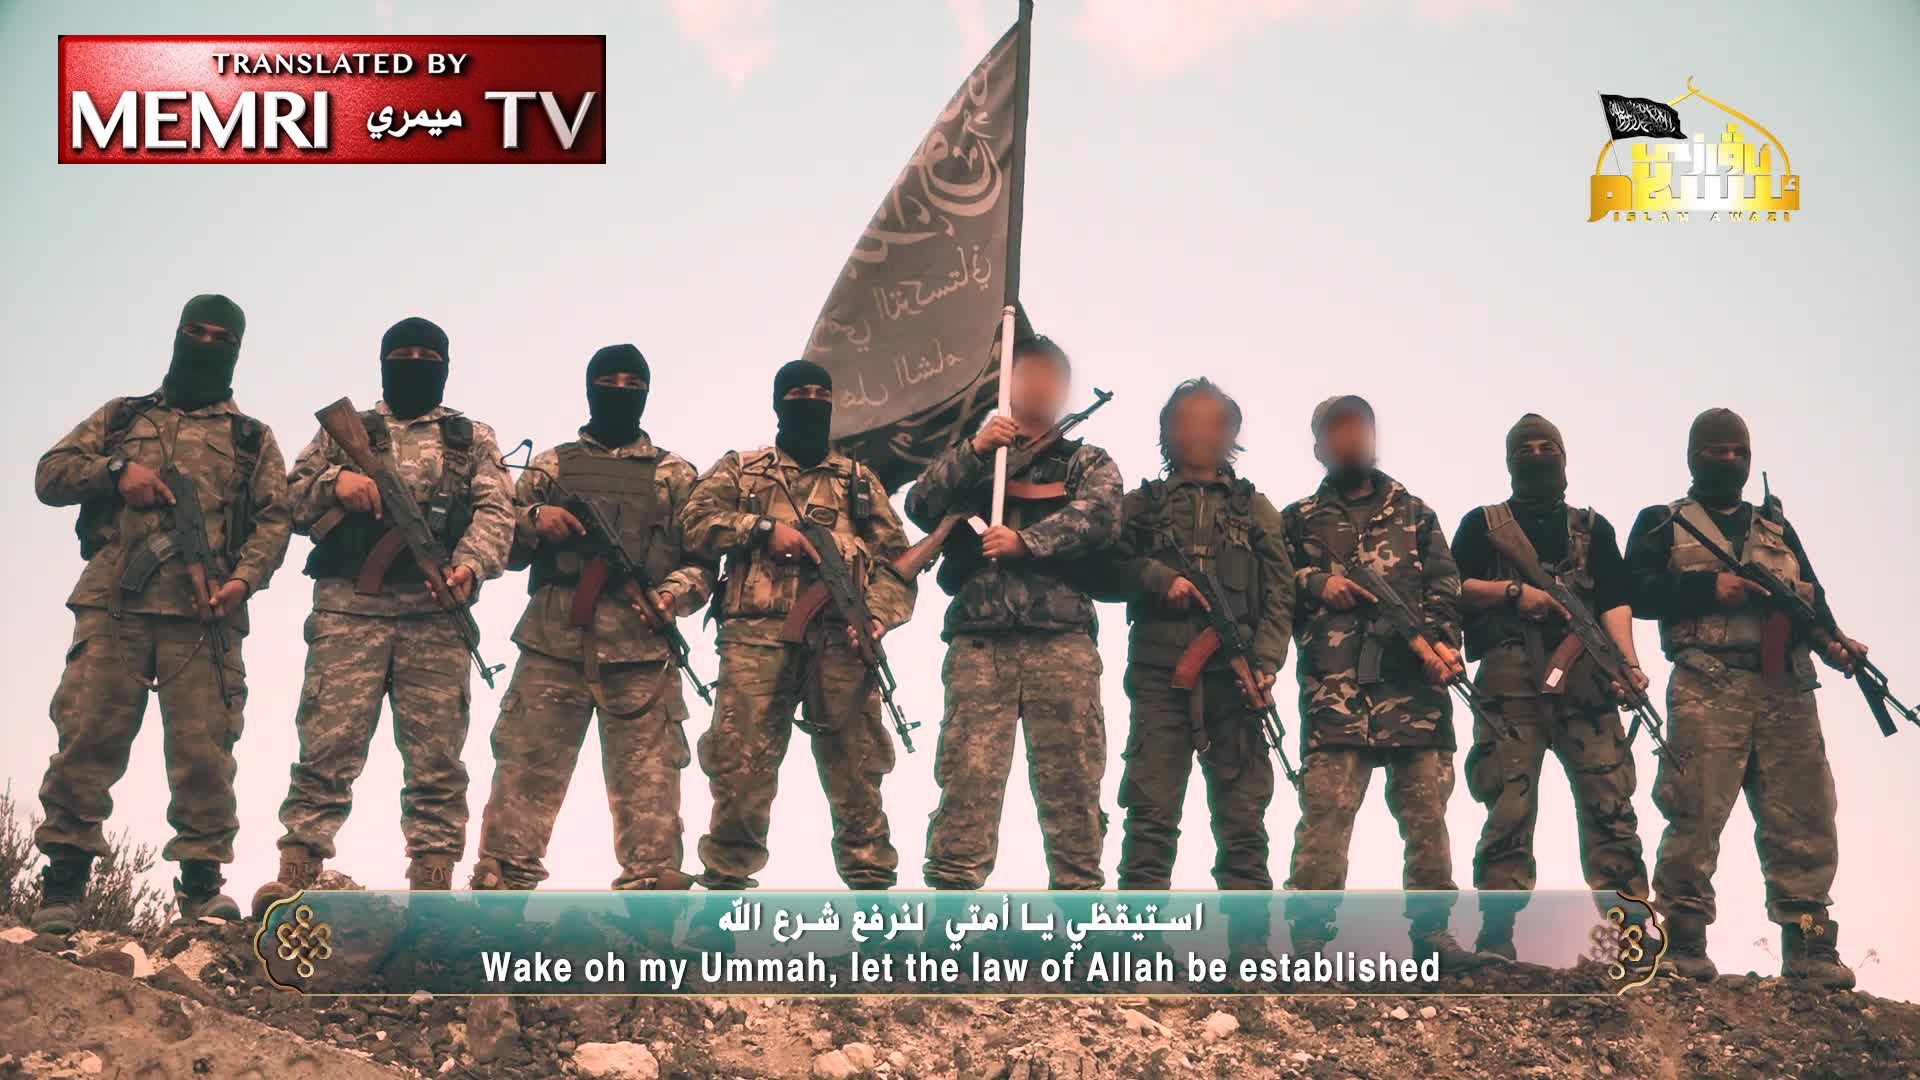 Turkistan Islamic Party Releases Music Video Calling Muslims to Jihad, Showing Uyghur Jihadis in Syria